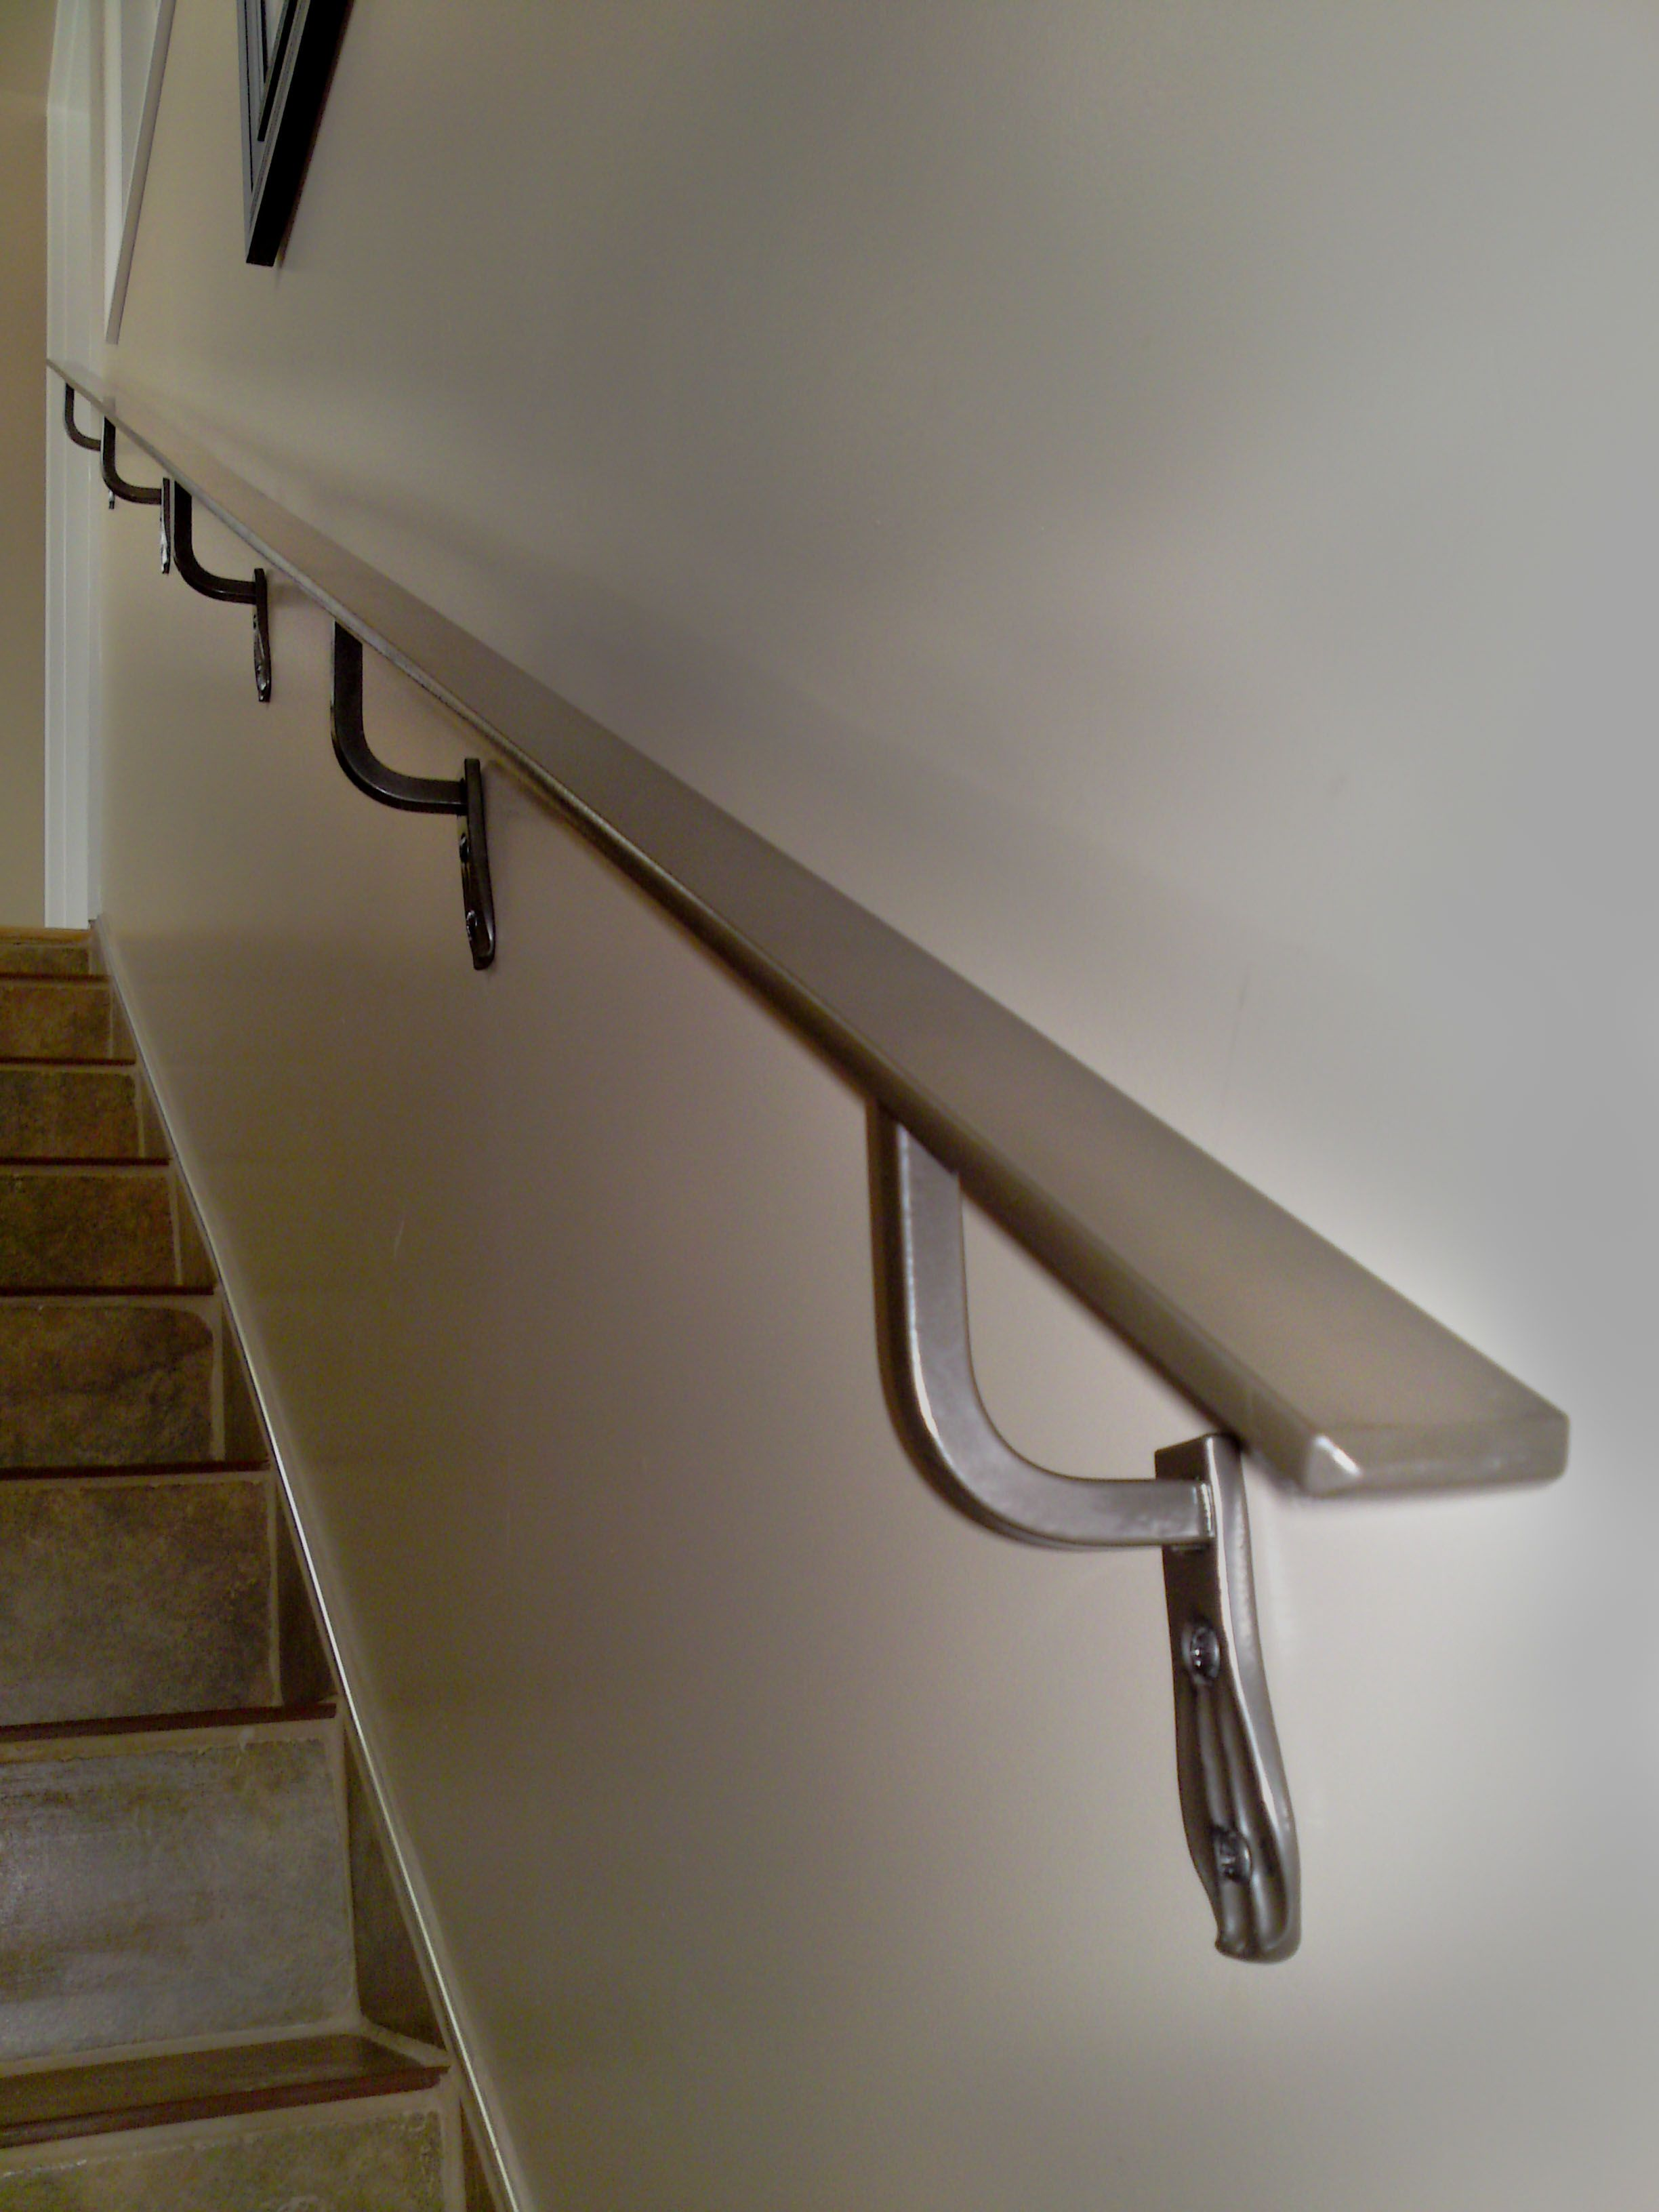 Design Handrails For Stairs shining wall mounted handrails myhomeimprovement new house myhomeimprovement